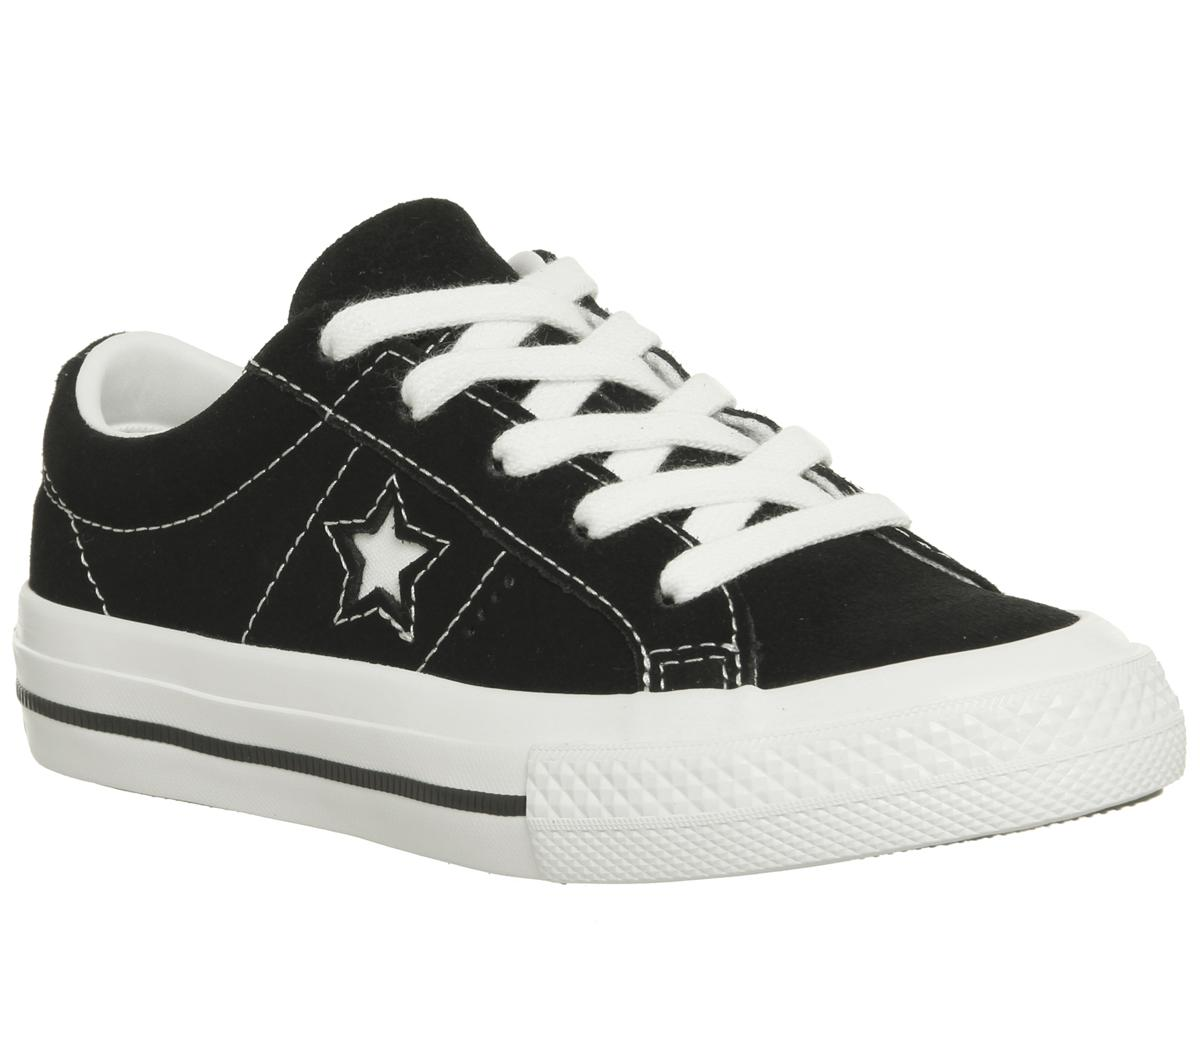 Converse One Star Youth Trainers Black White - Unisex